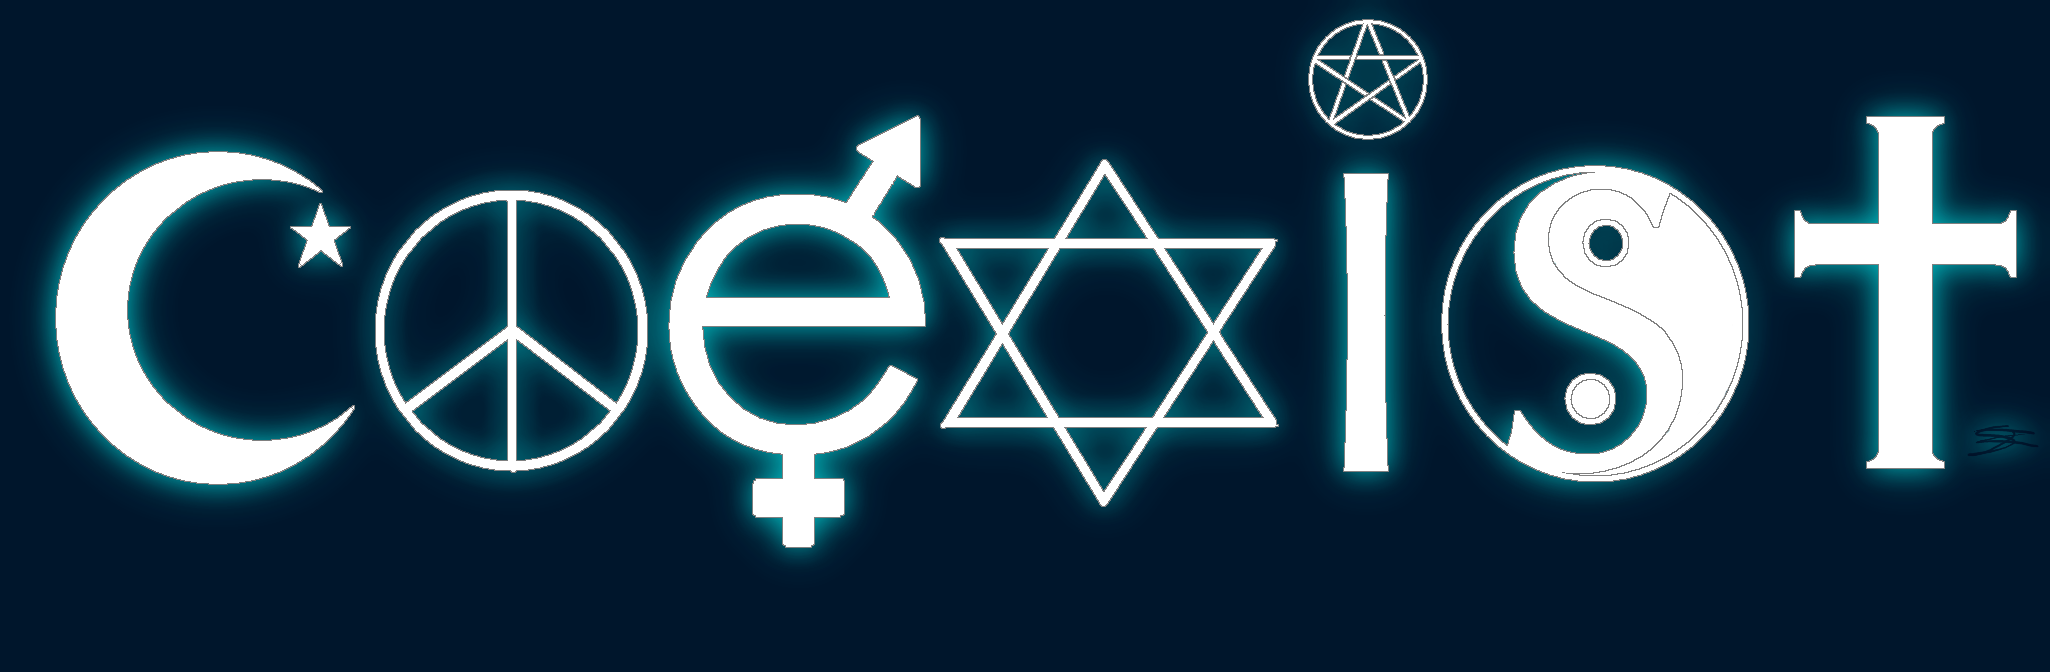 Religious freedom coexist sticker